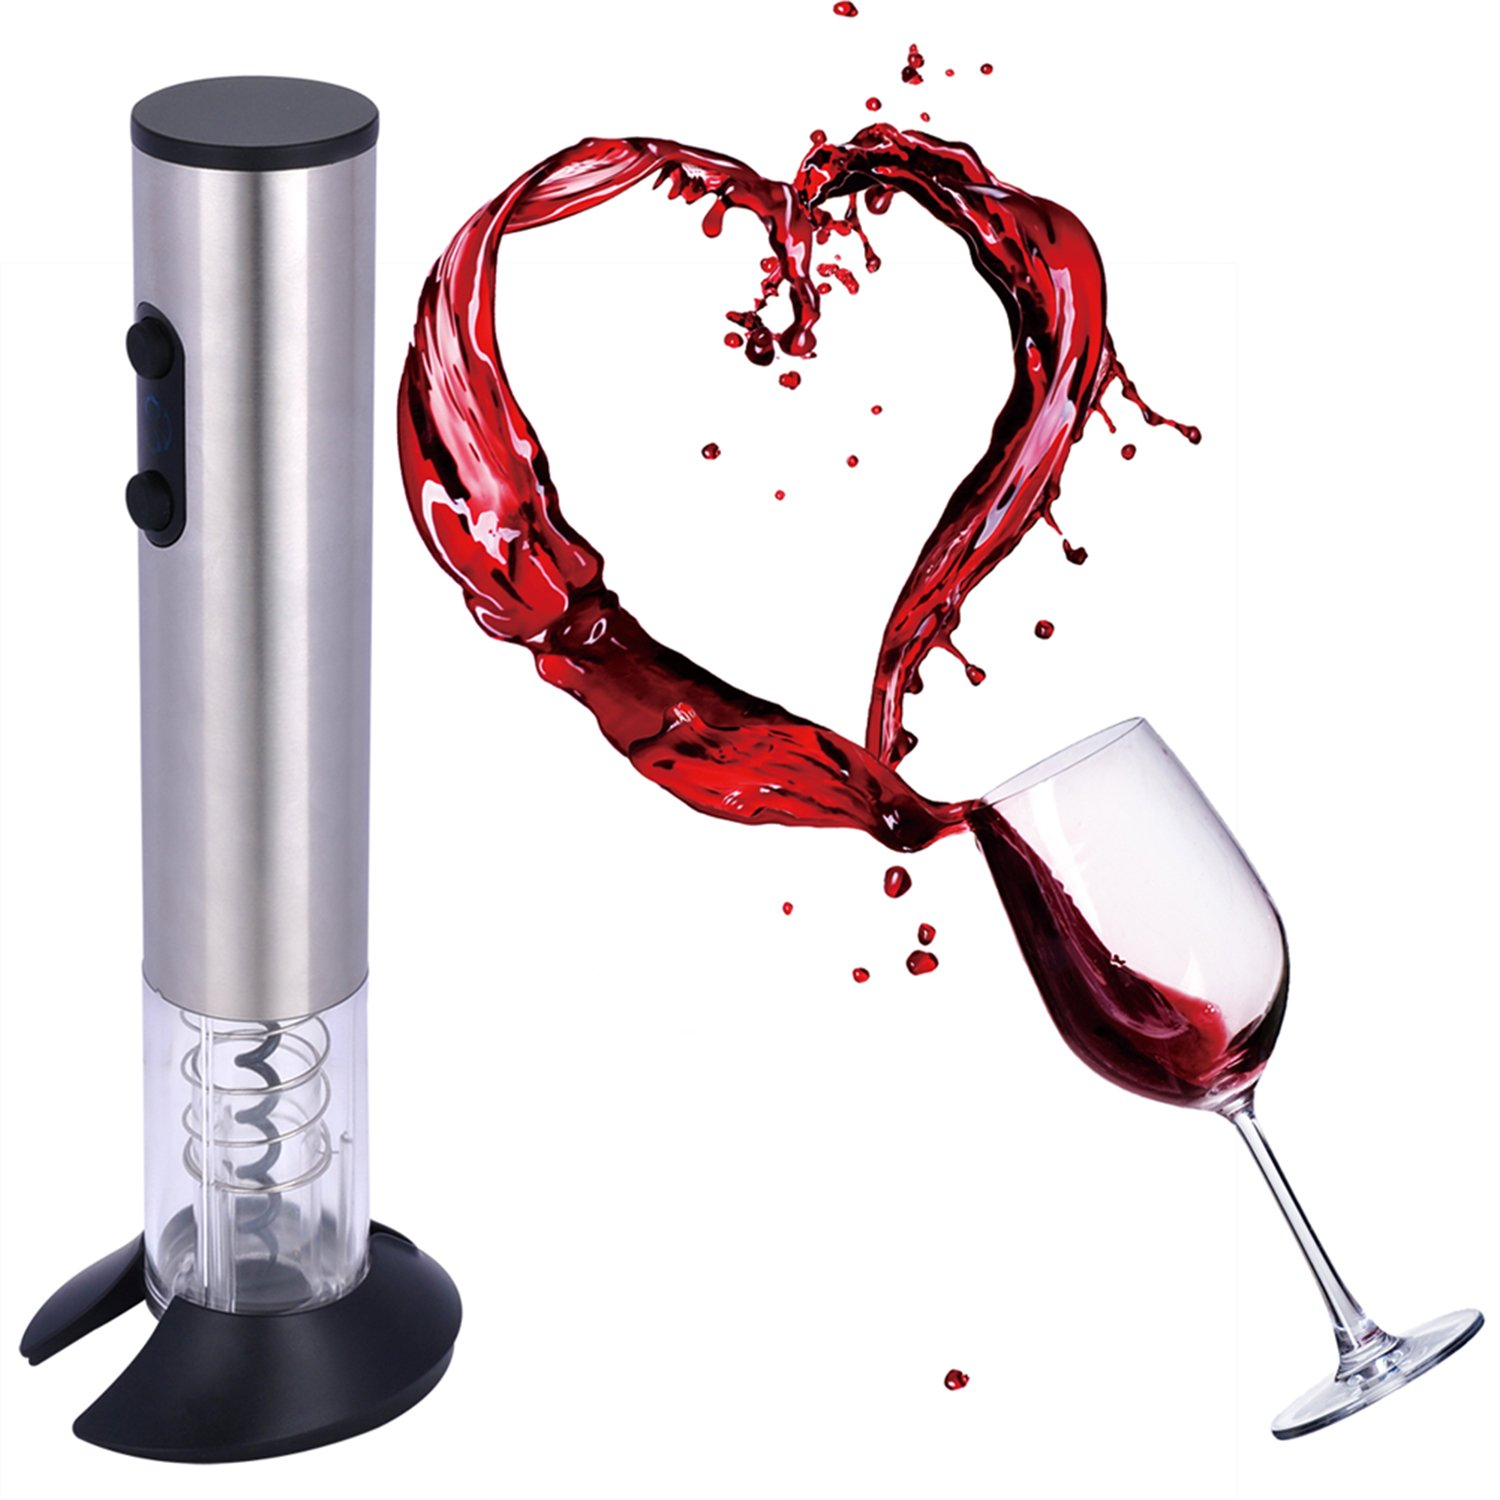 Electric Wine Opener Automatic wine bottle opener with charger and Foil Cutter by zhenxing